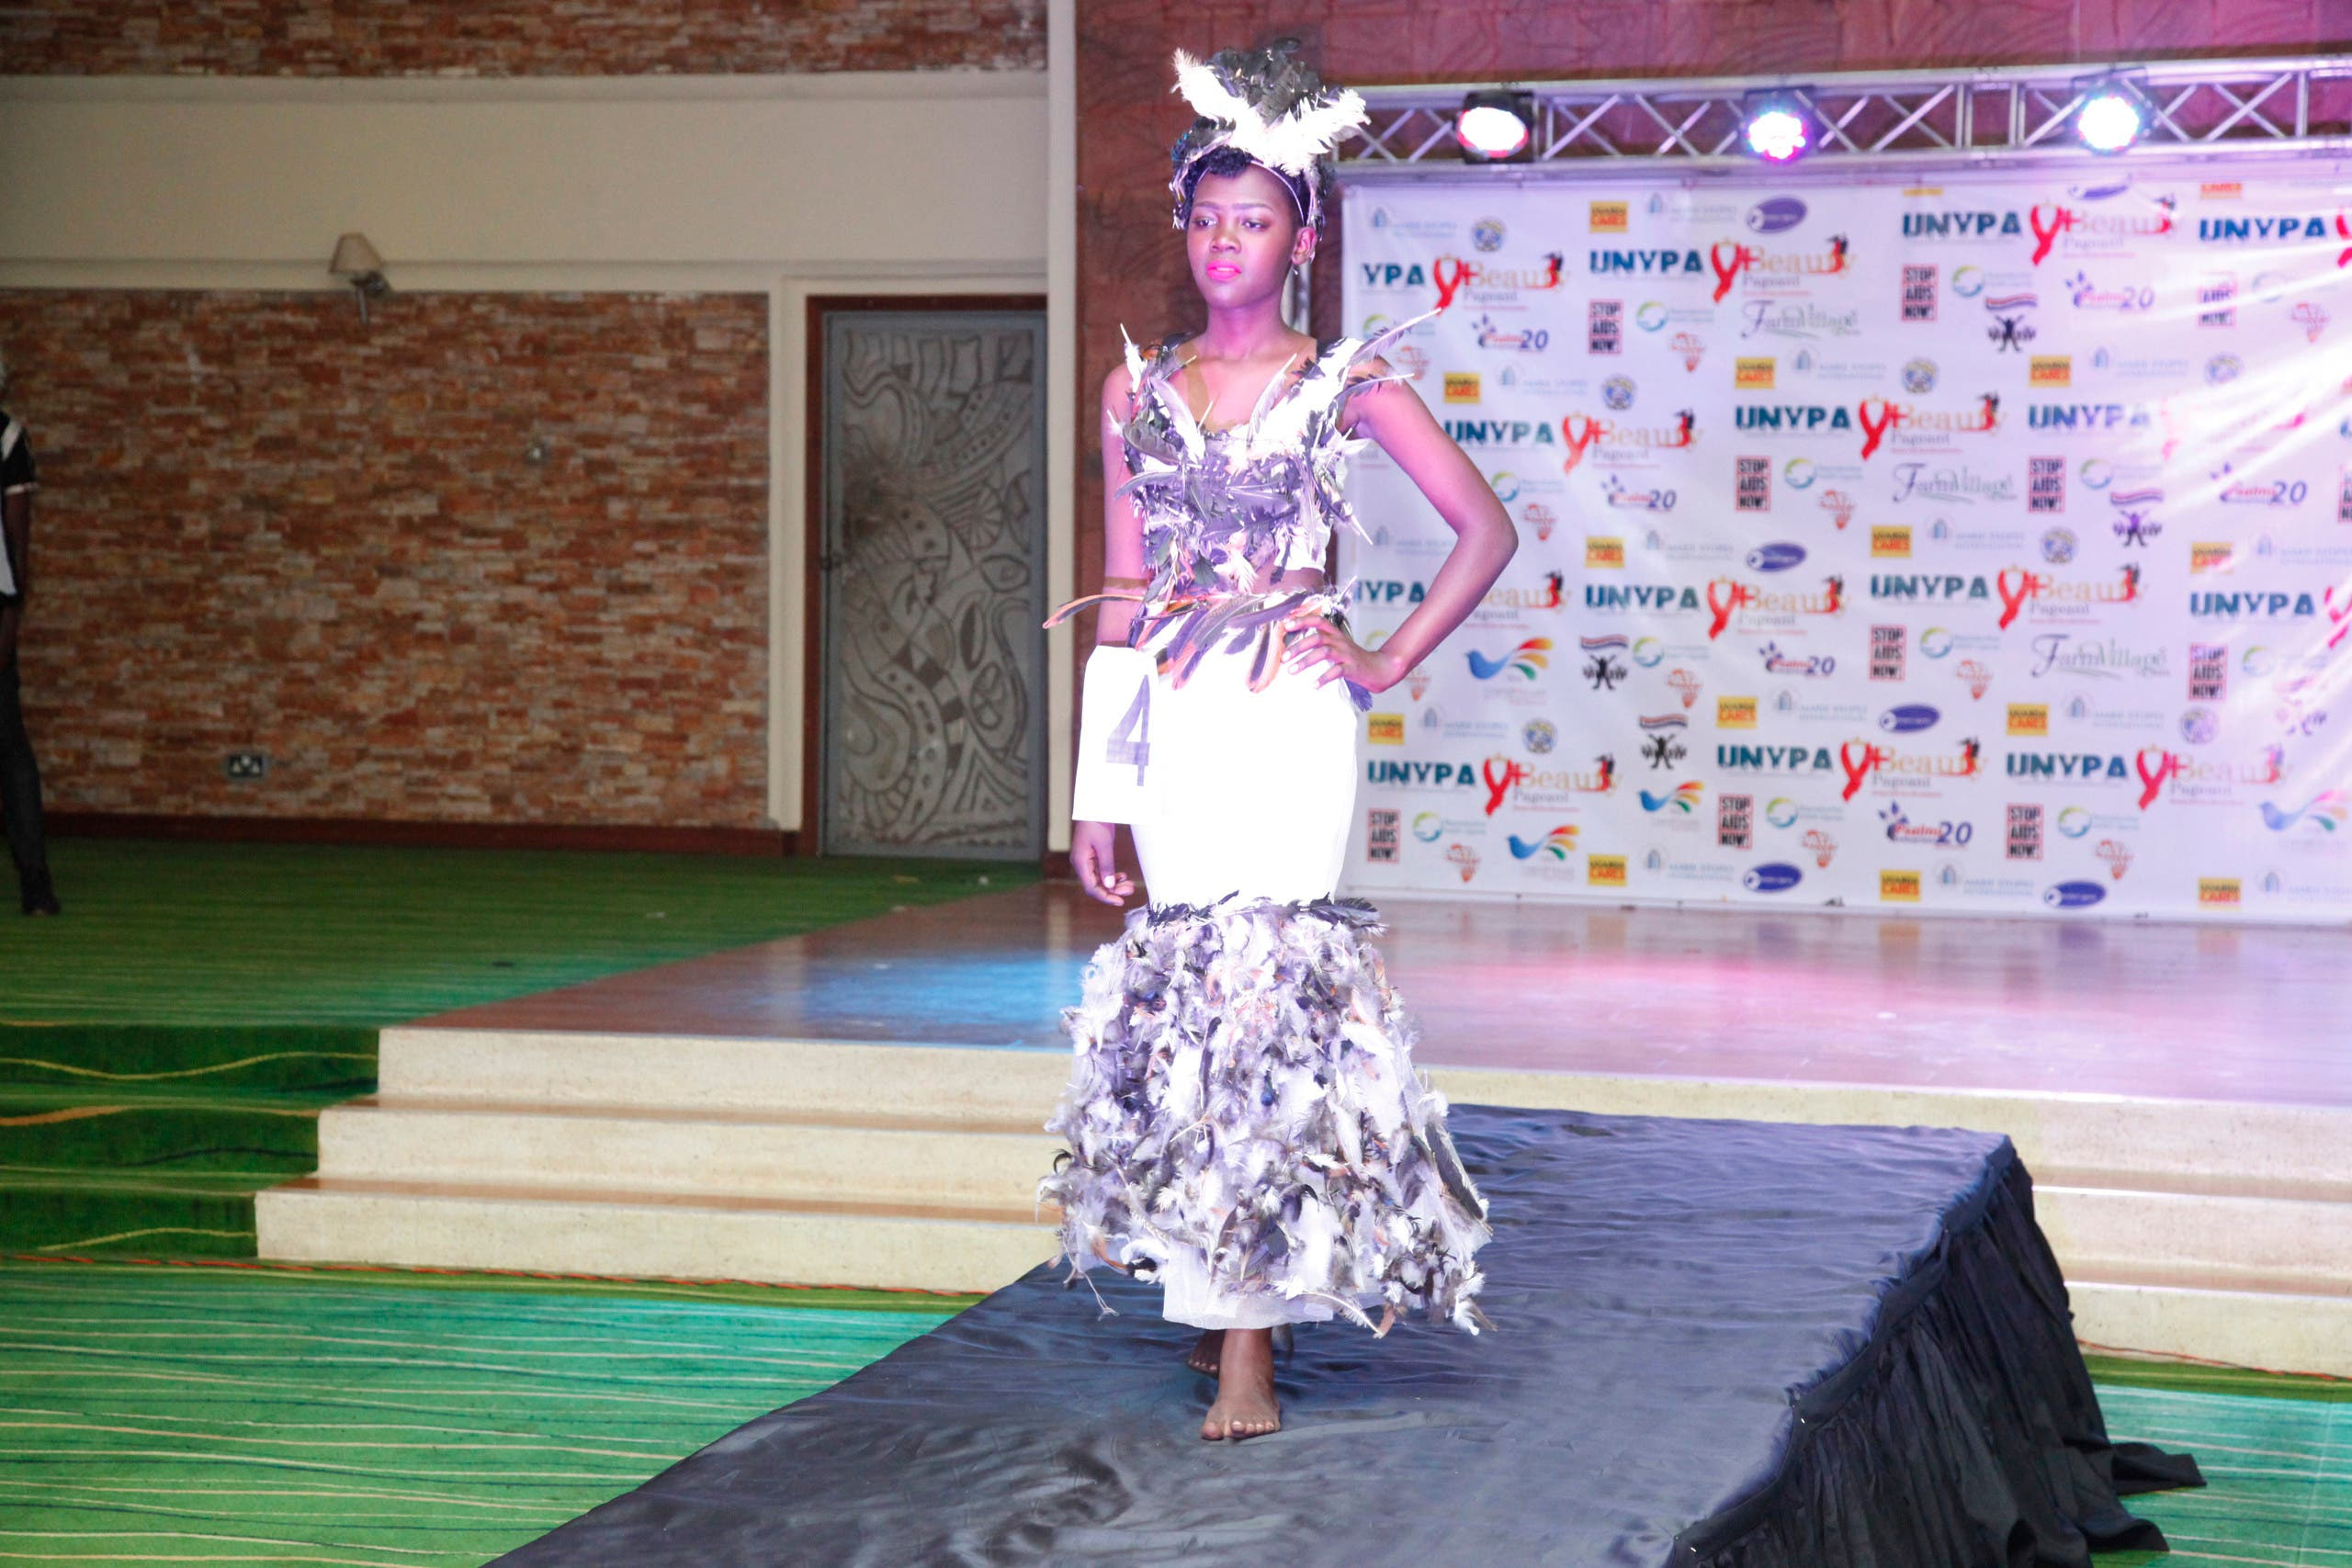 A Ugandan models a dress on the runway at the third annual Uganda Network of Young People Living with HIV beauty pageant at Golf Course Hotel Kampala, Uganda, Saturday Sept. 24, 2016.